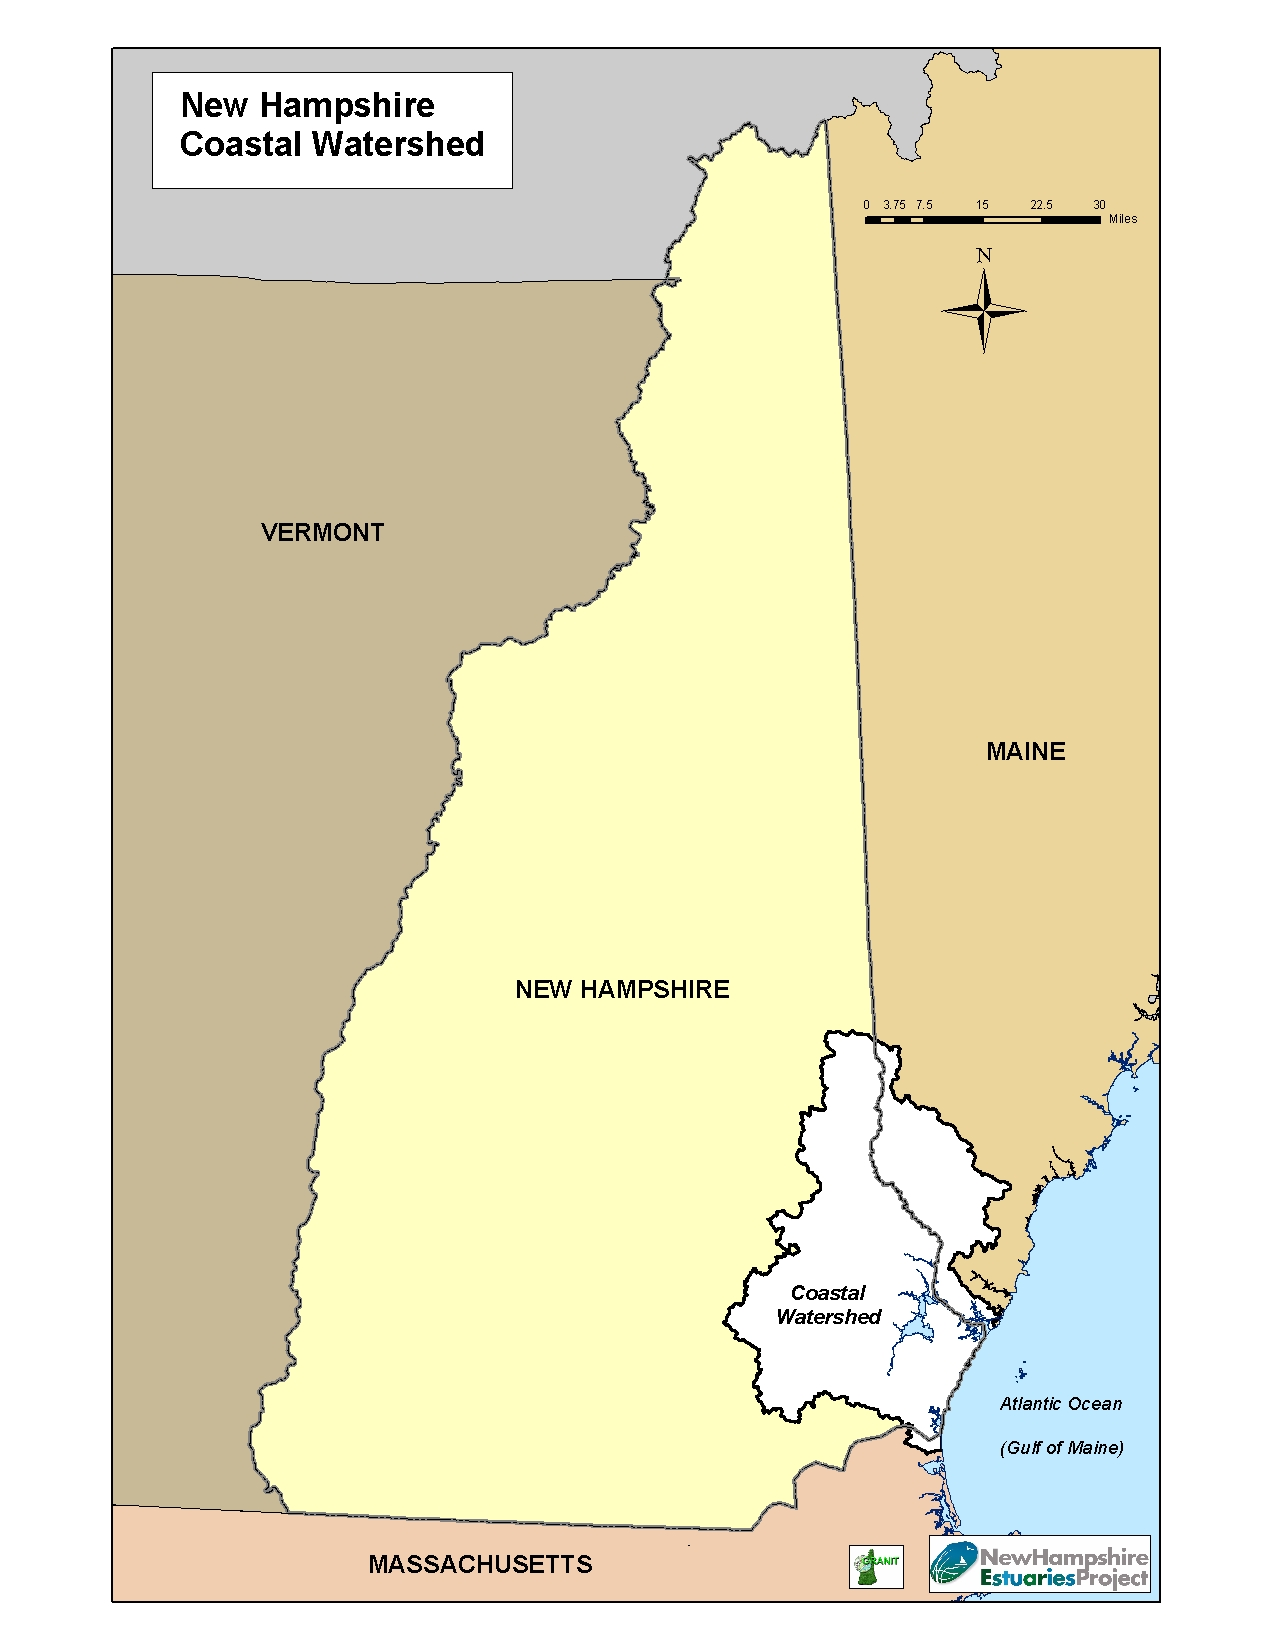 Maps | Piaqua Region Estuaries Partnership Durham Nh Map on